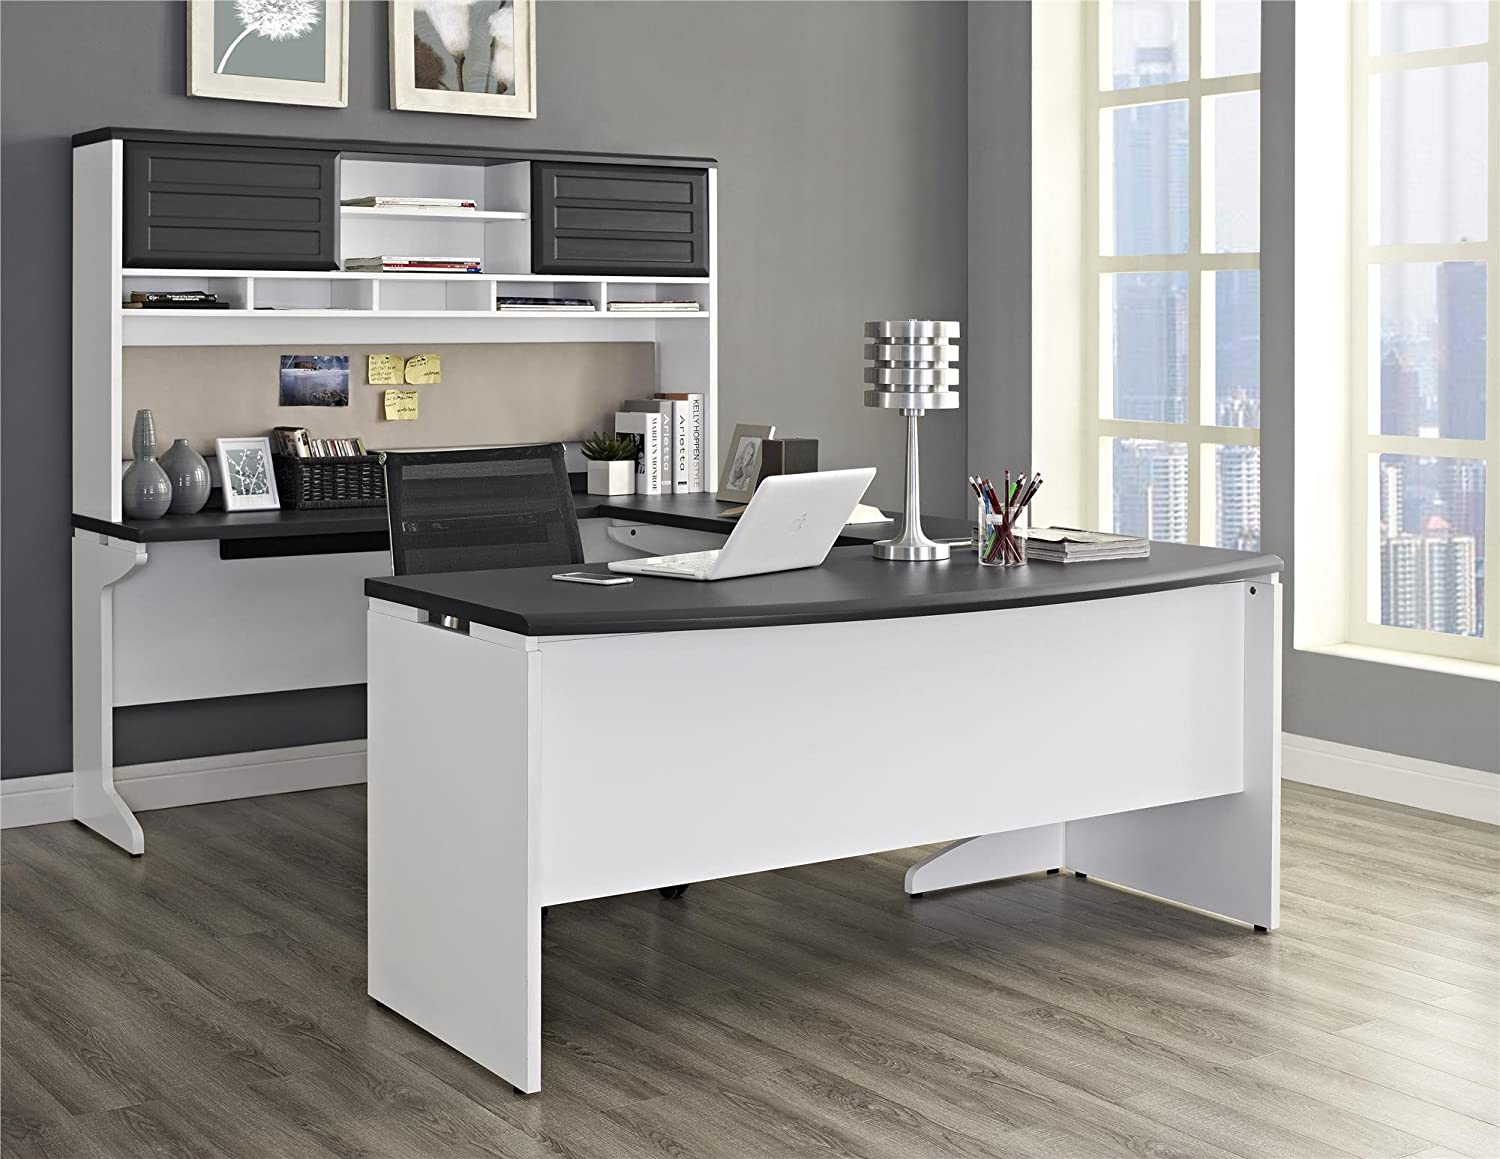 u suite medina series straight left pc executive desk handed shaped detail htm front store